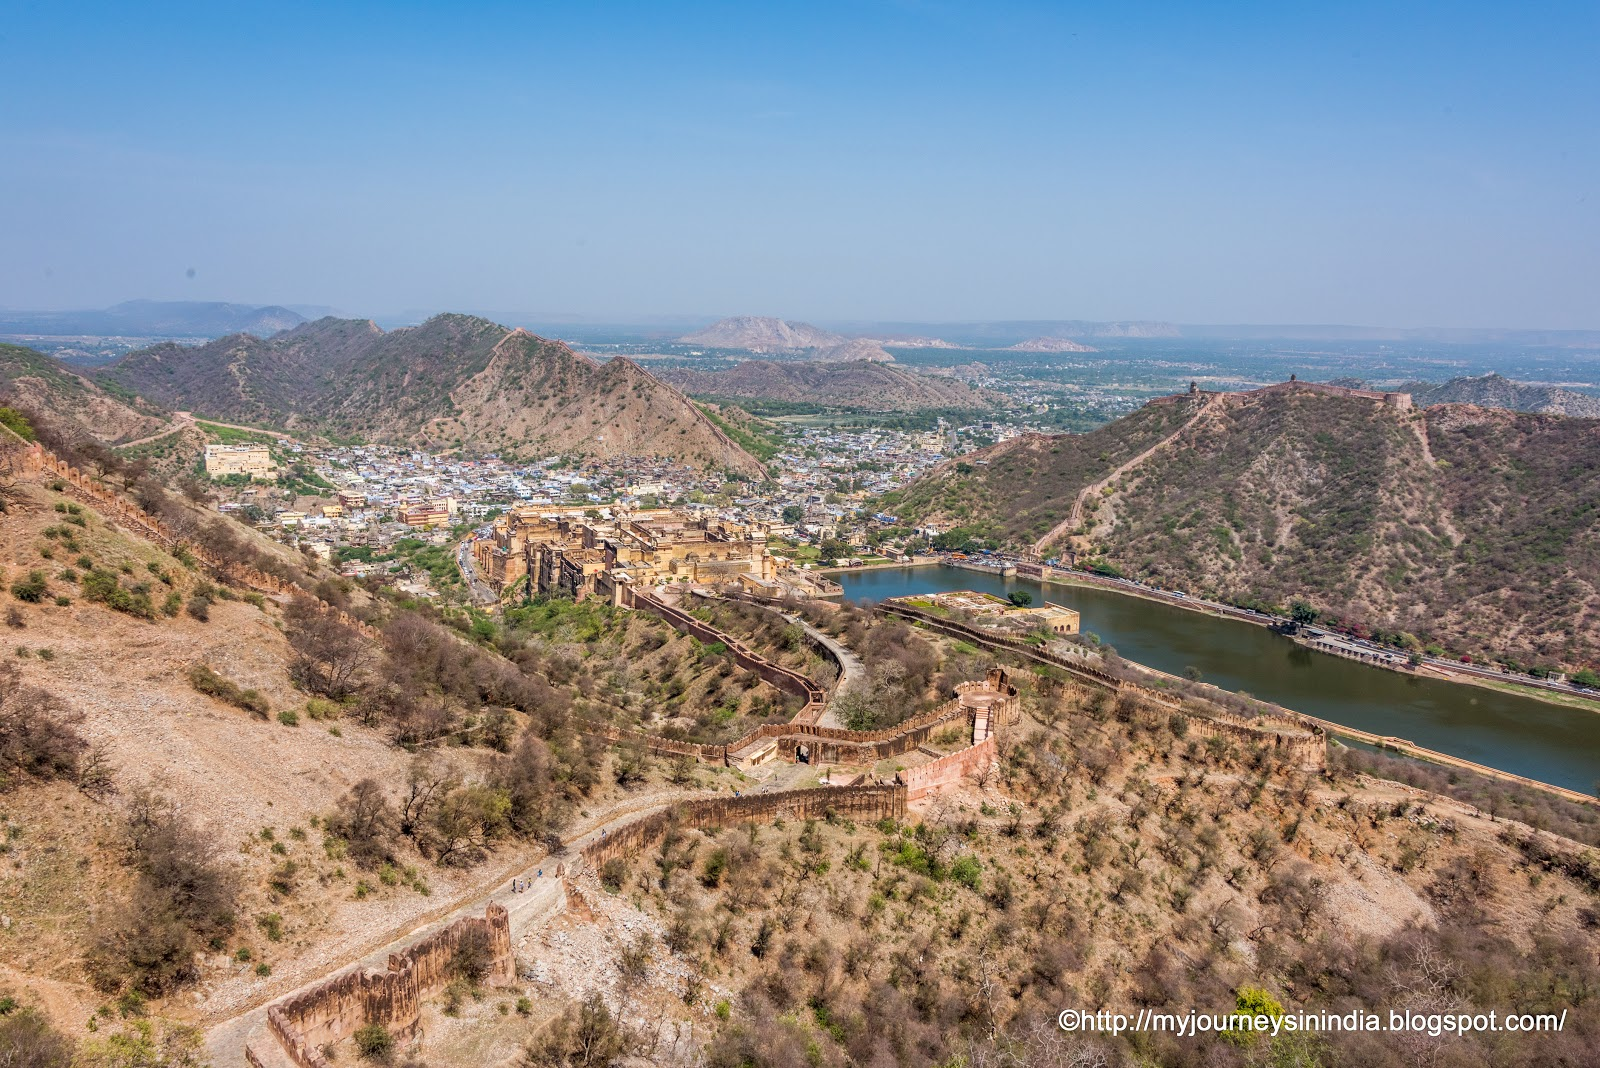 View of Maota Lake from Jaigarh Fort Jaipur